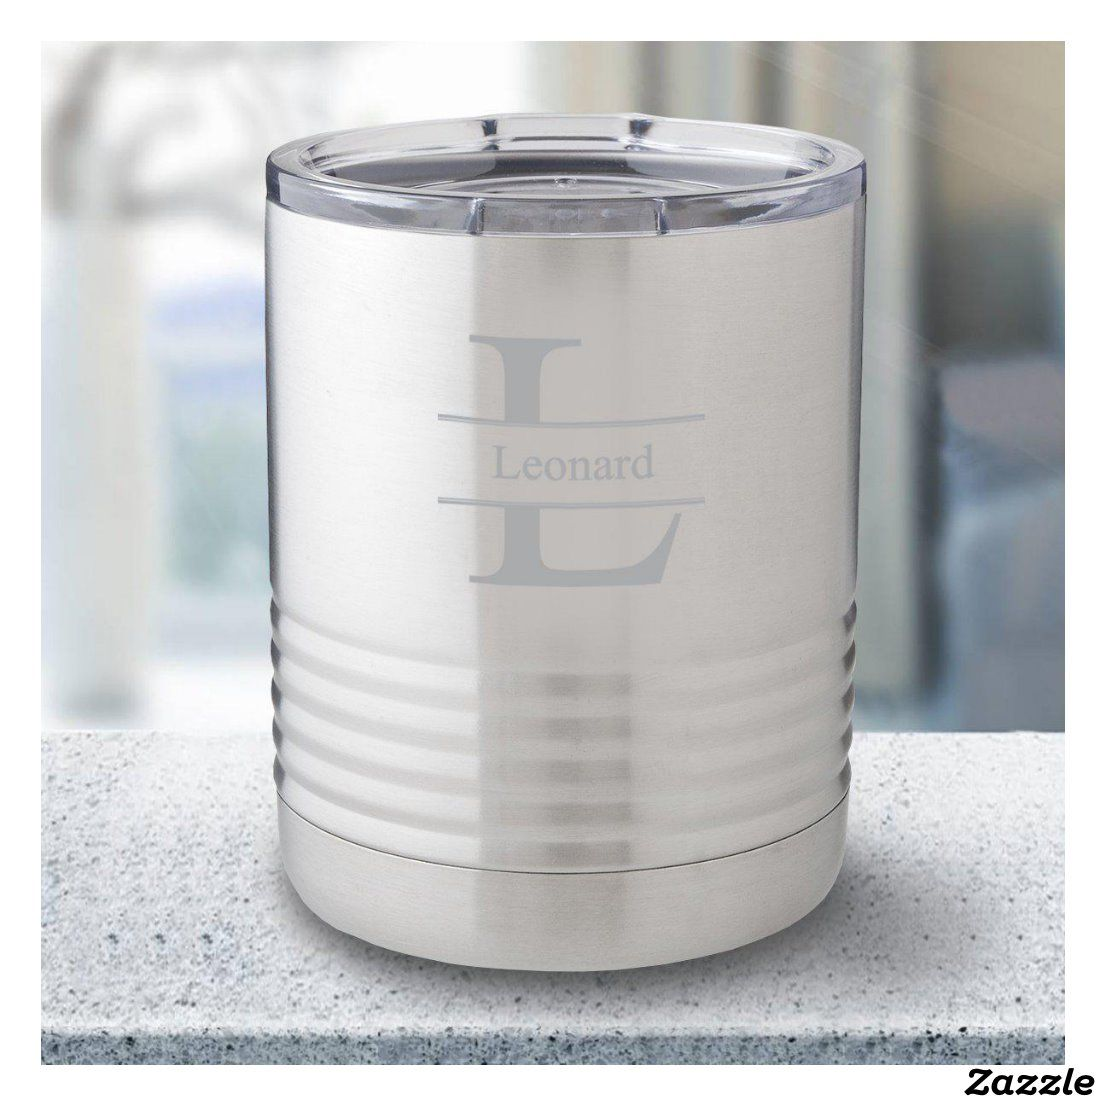 Stamped Monogram Insulated Stainless Steel Tumbler Zazzle Com